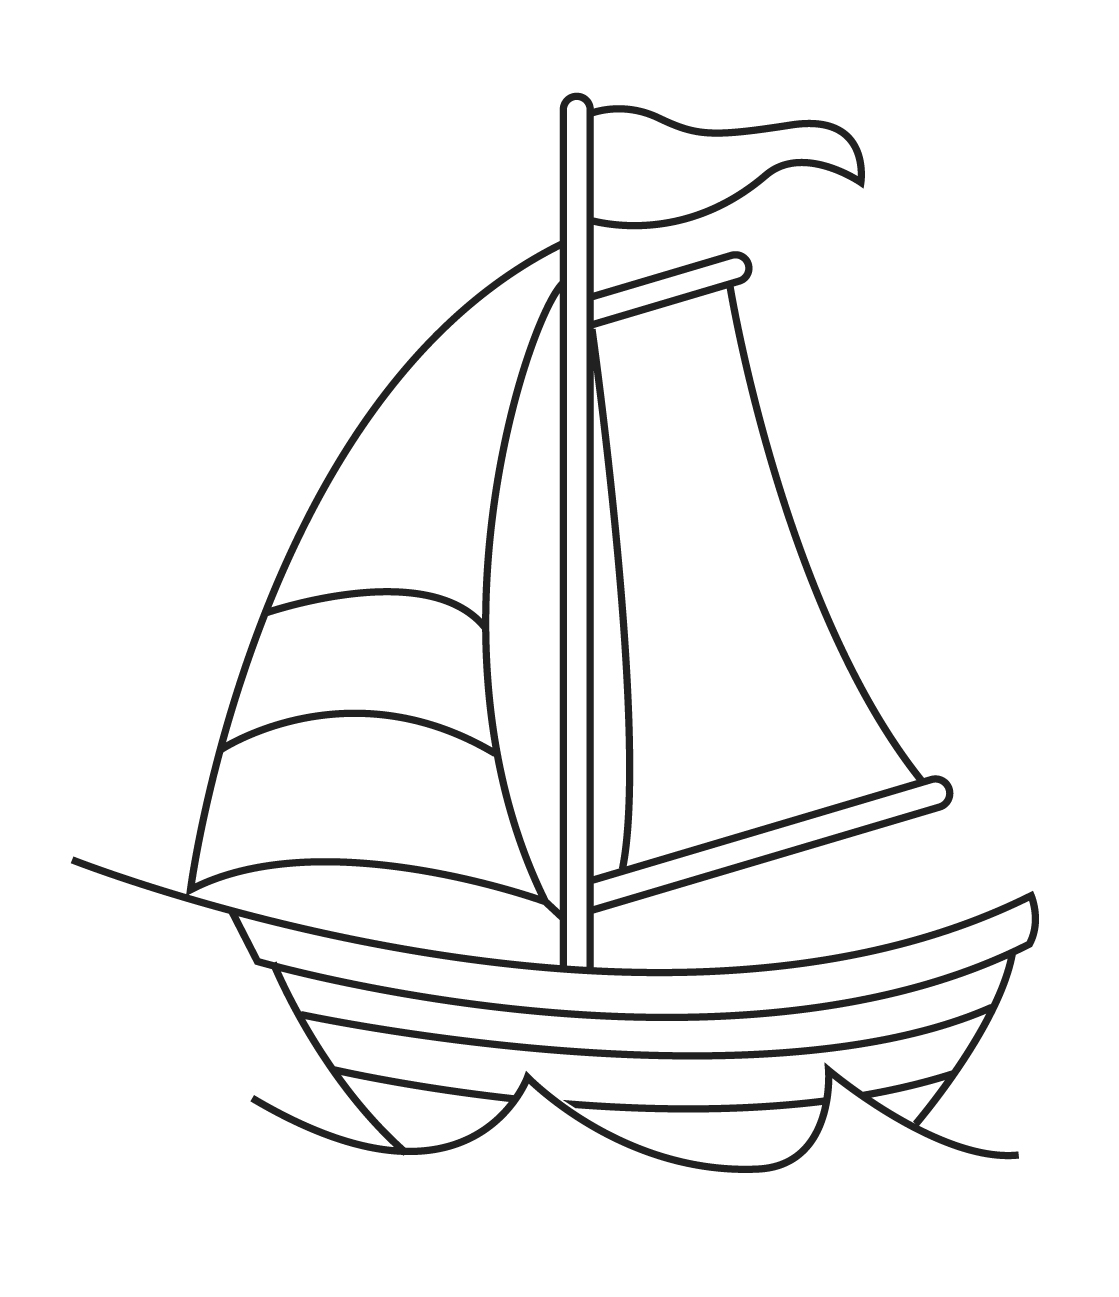 Line Drawing Yacht : Sailboat line drawing clipart best